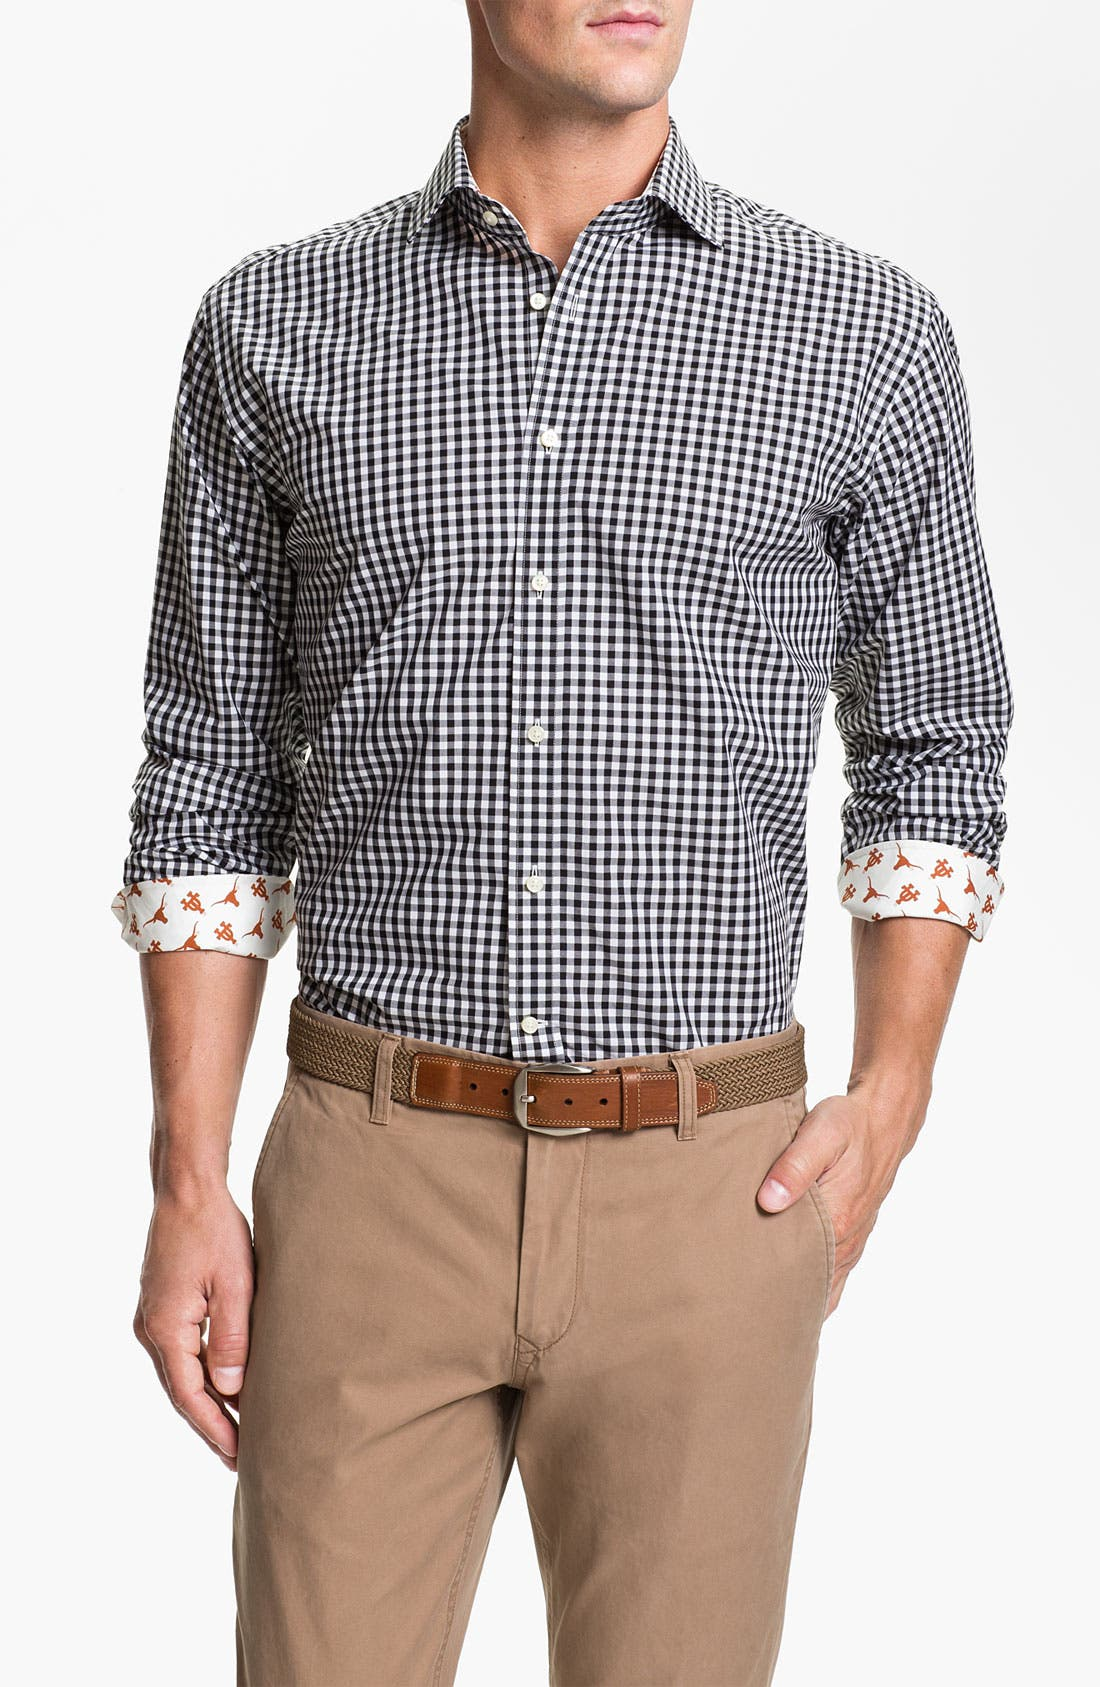 Alternate Image 1 Selected - Thomas Dean 'University of Texas' Gingham Sport Shirt (Online Only)